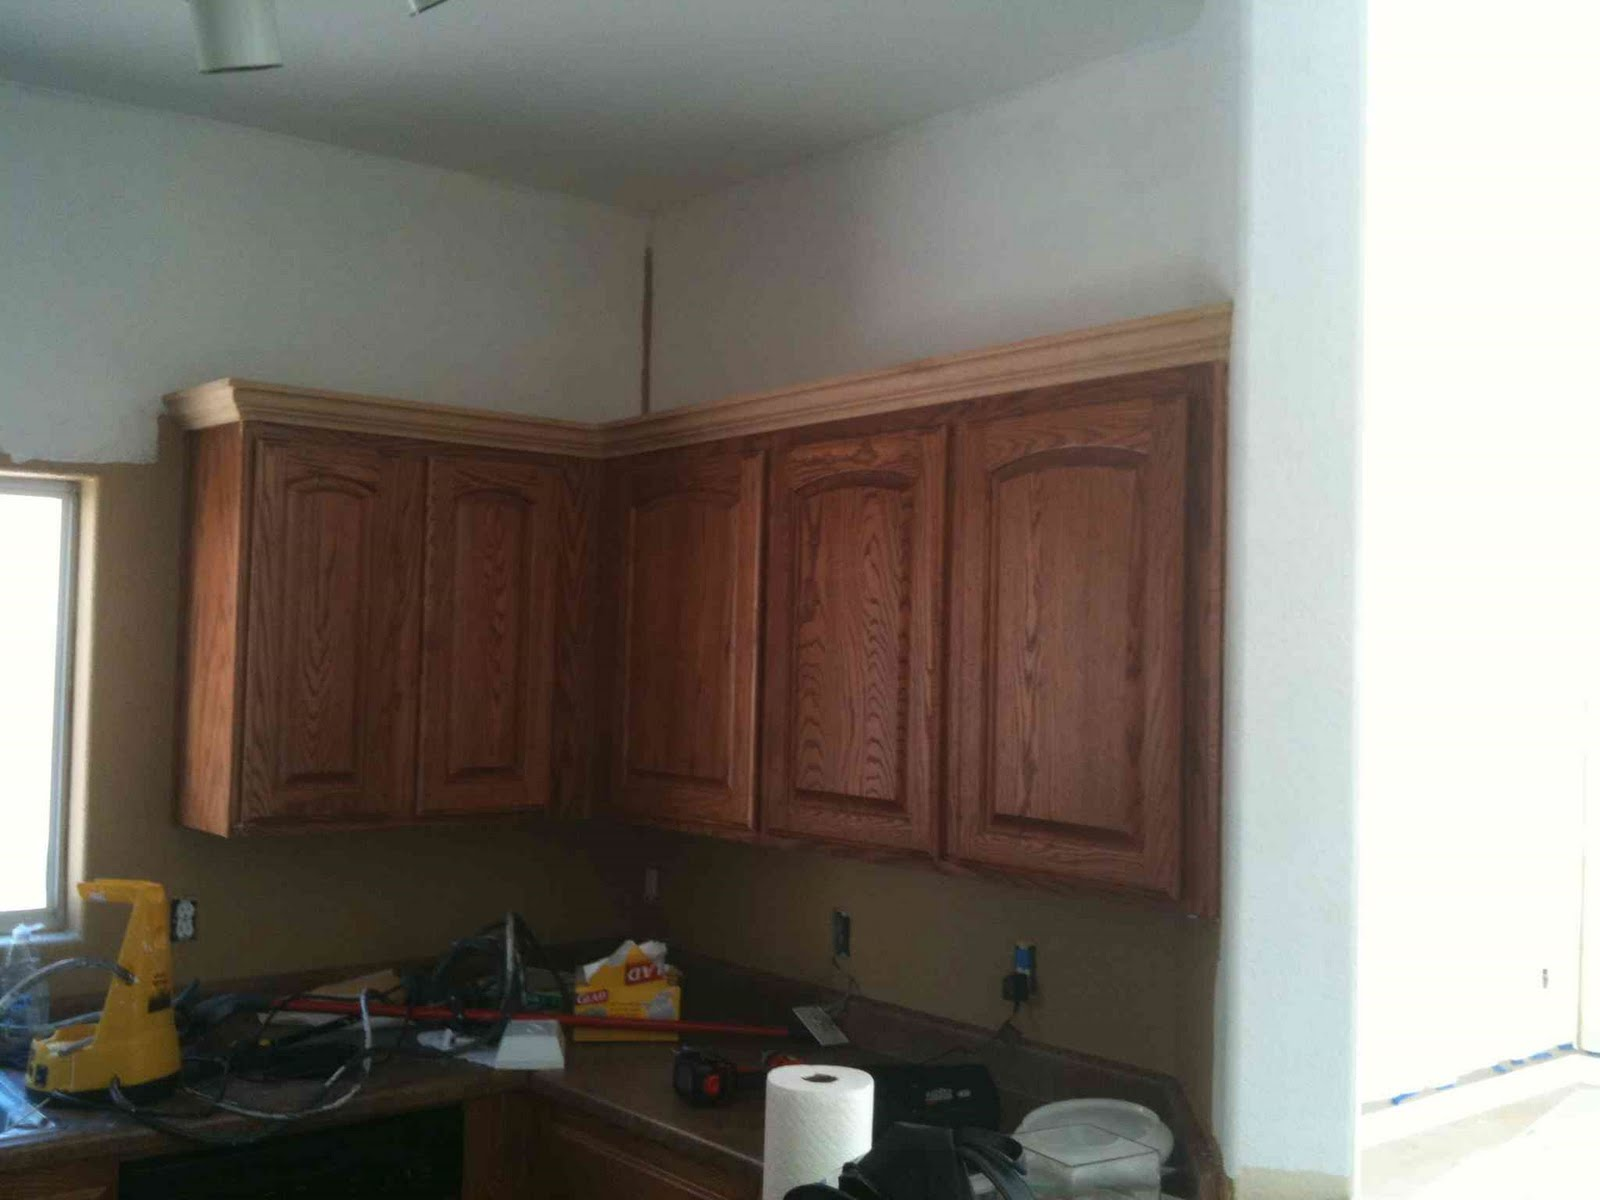 Kitchen cabinets crown molding for Adding crown molding to existing kitchen cabinets